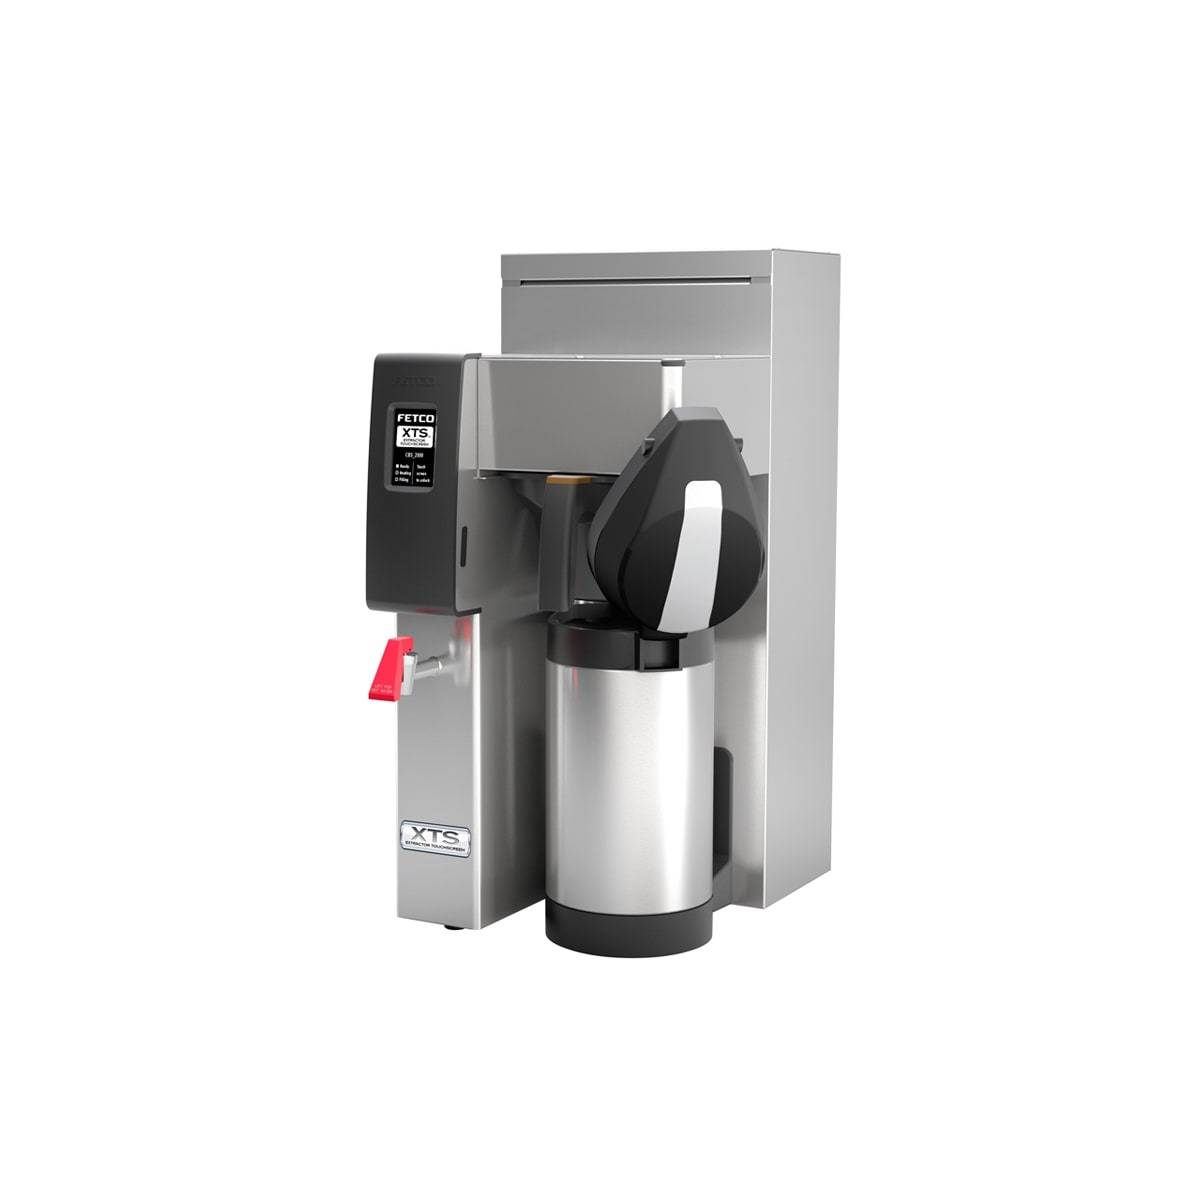 XTS Airpot Coffee Brewer CBS-2131 by Fetco